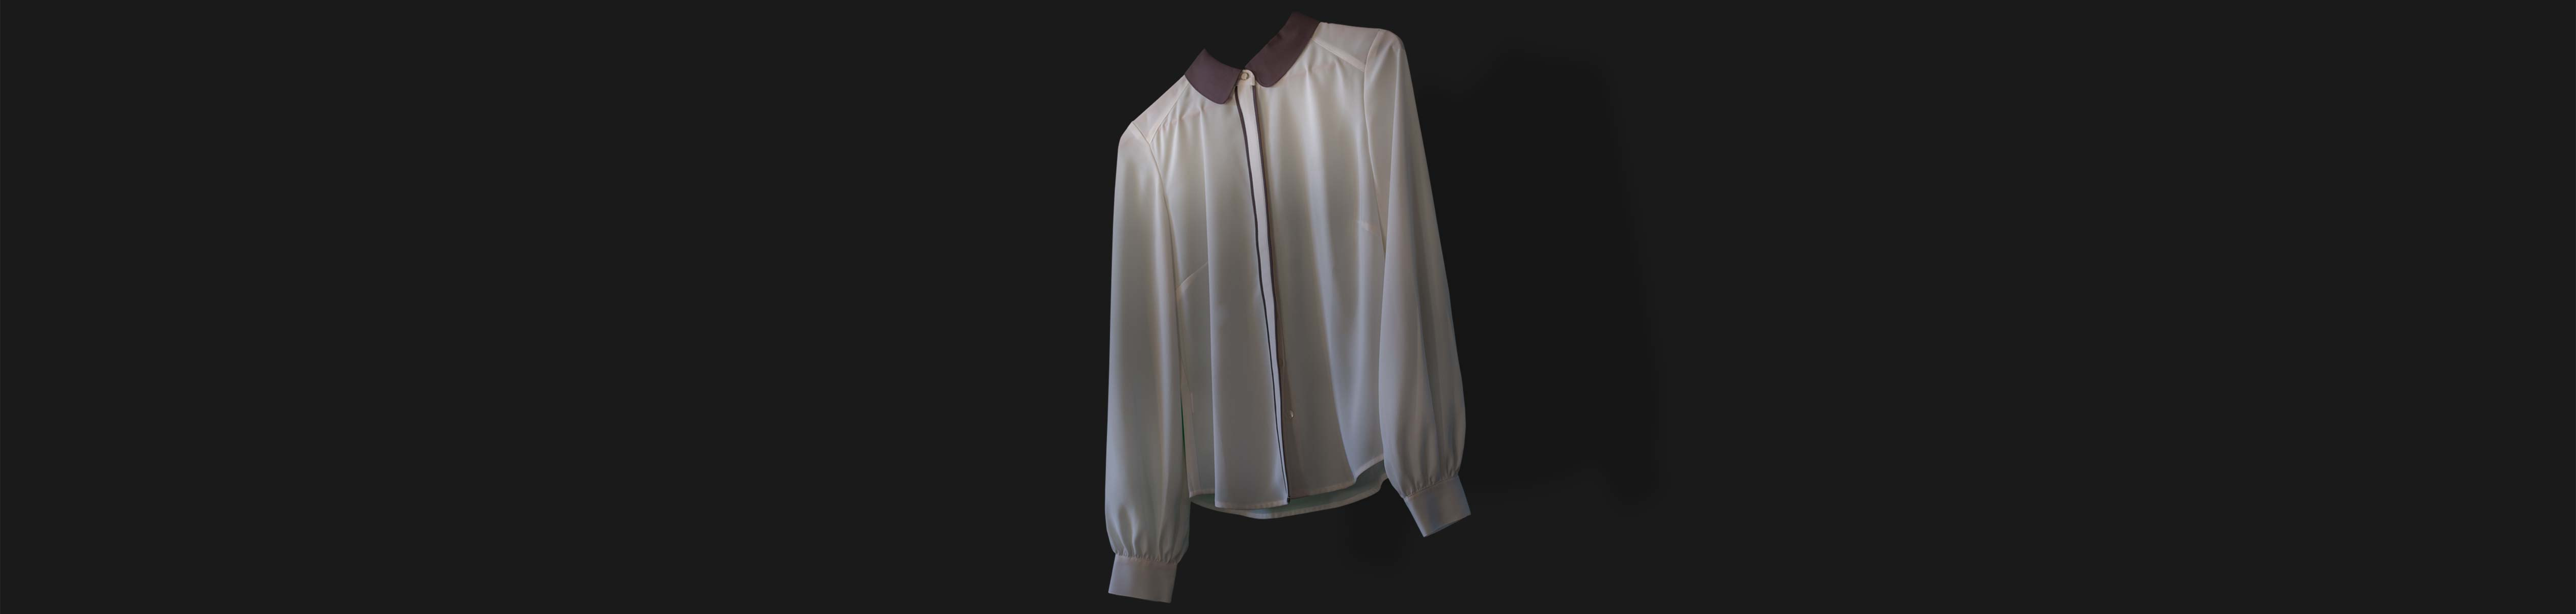 White blouse with long sleeves Oversal